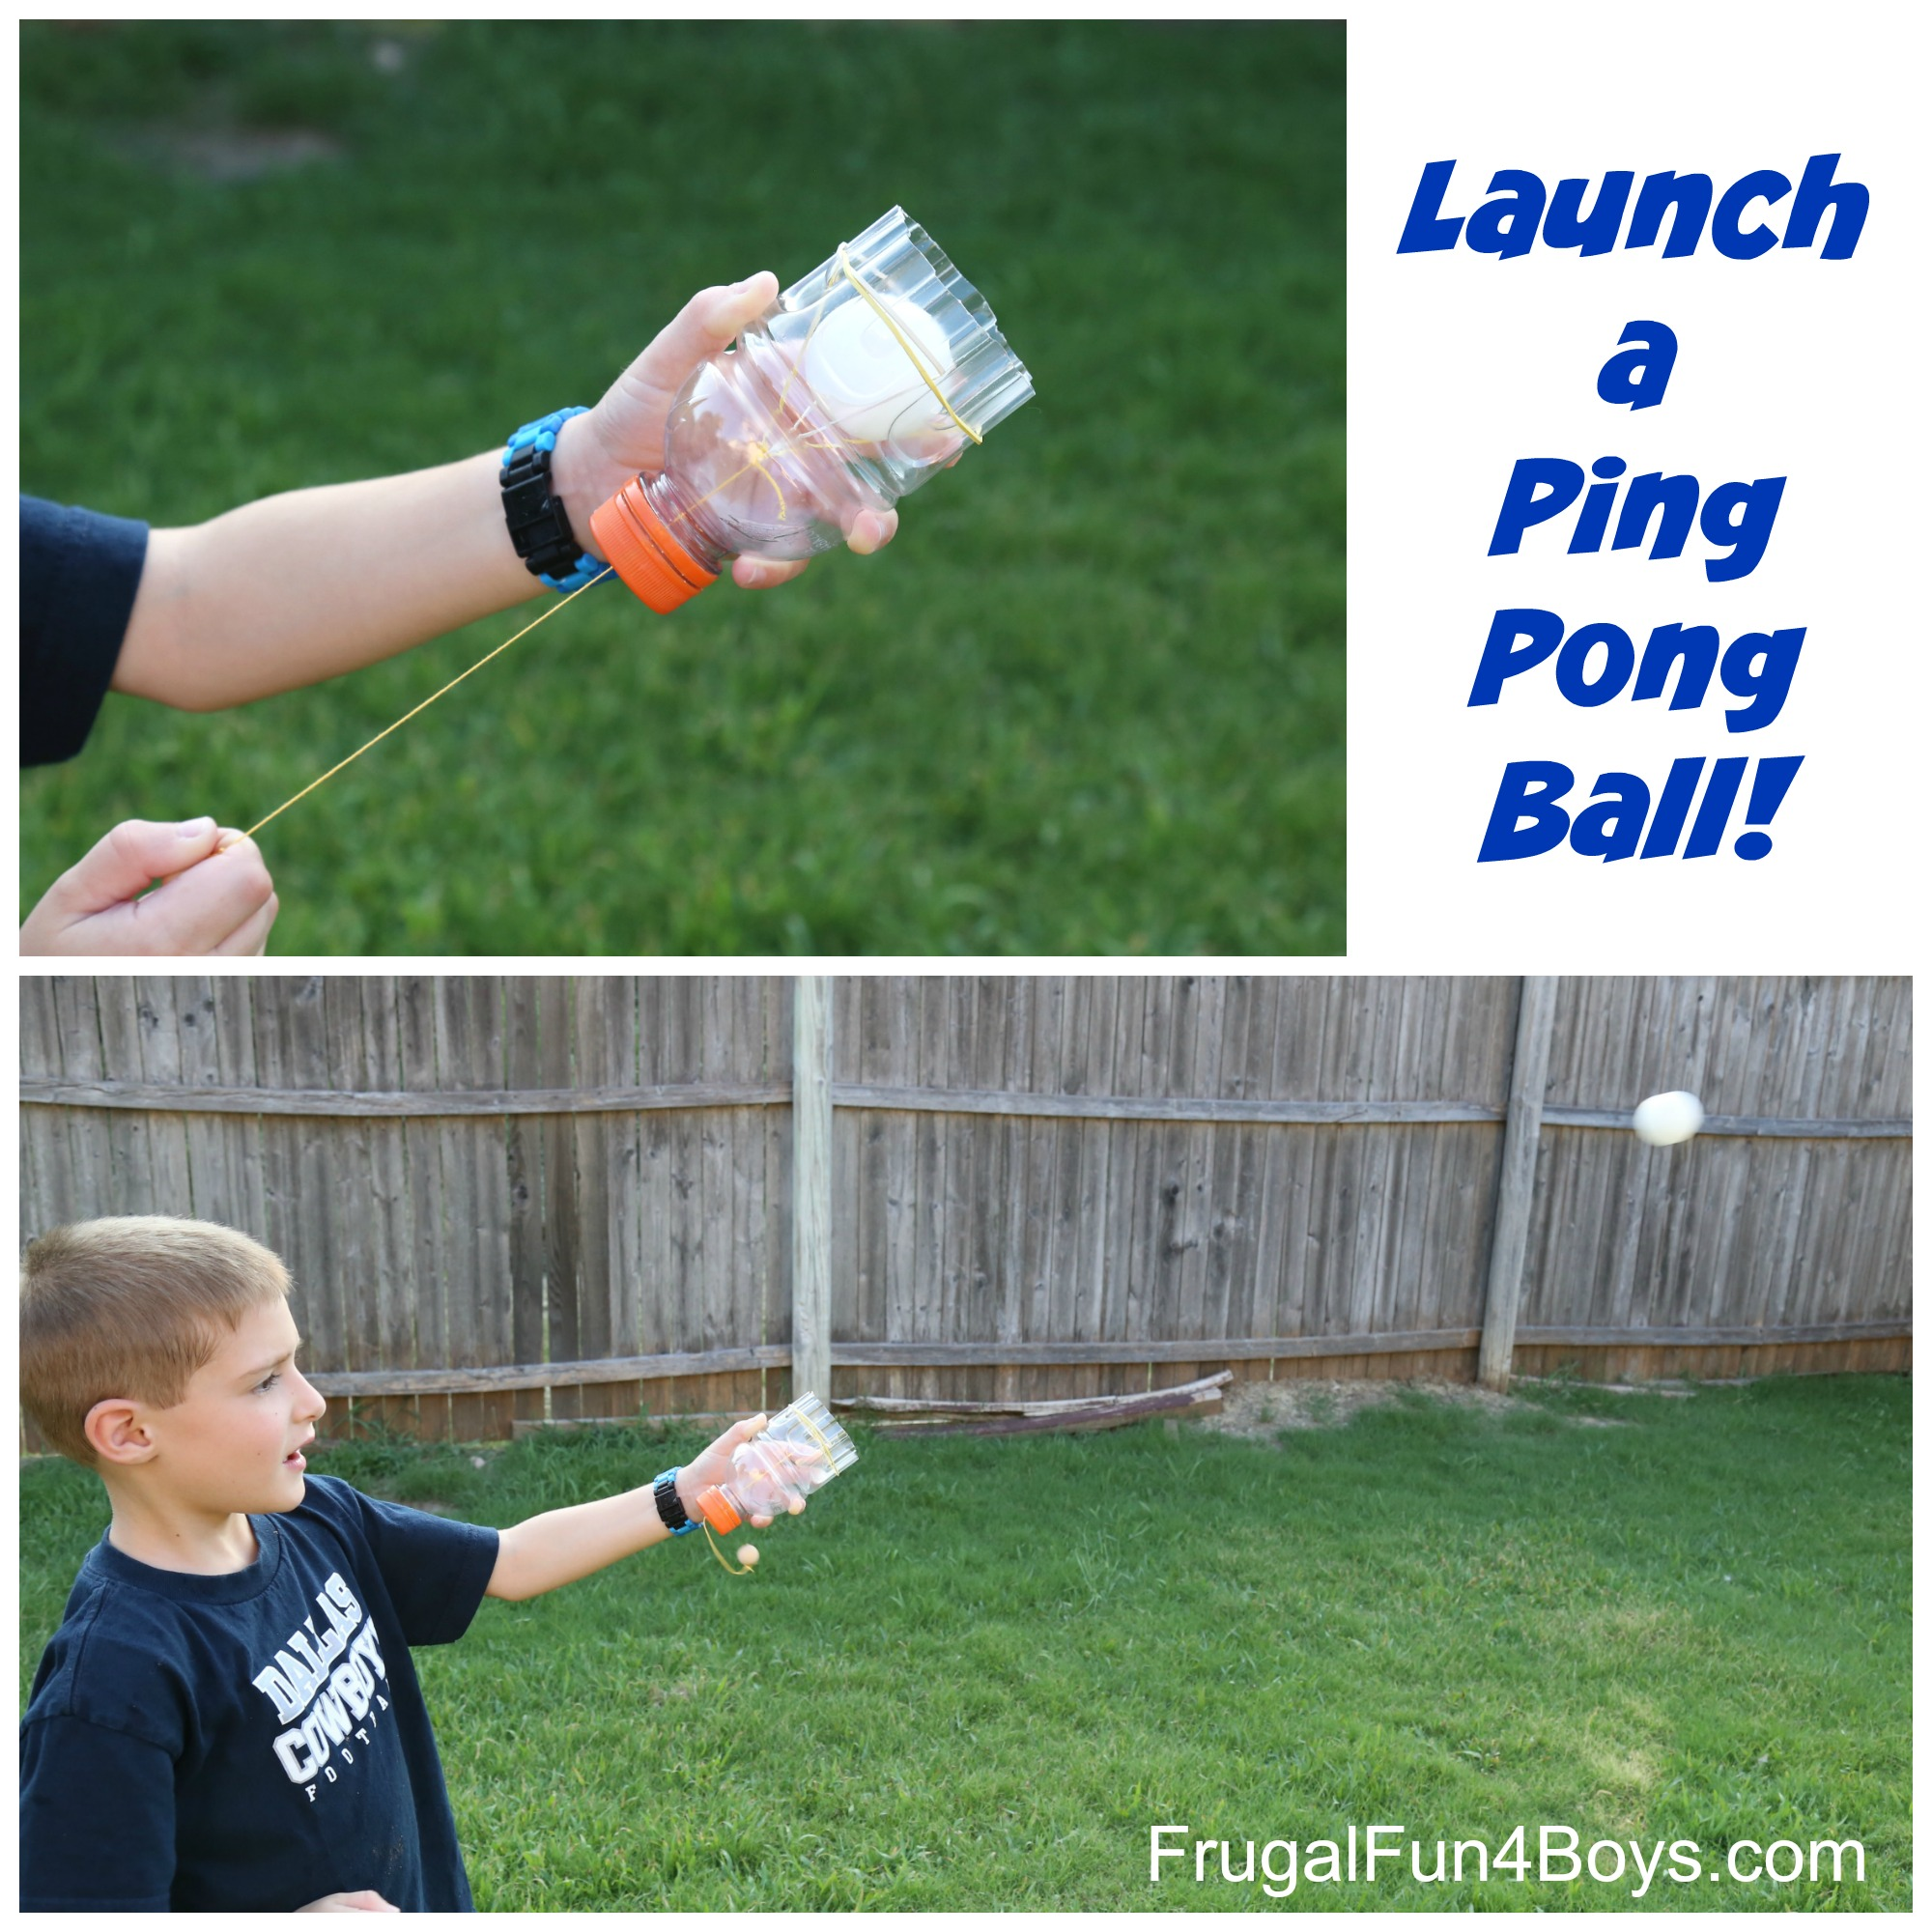 Launch a Ping Pong Ball! Make a homemade shooter out of a plastic bottle.